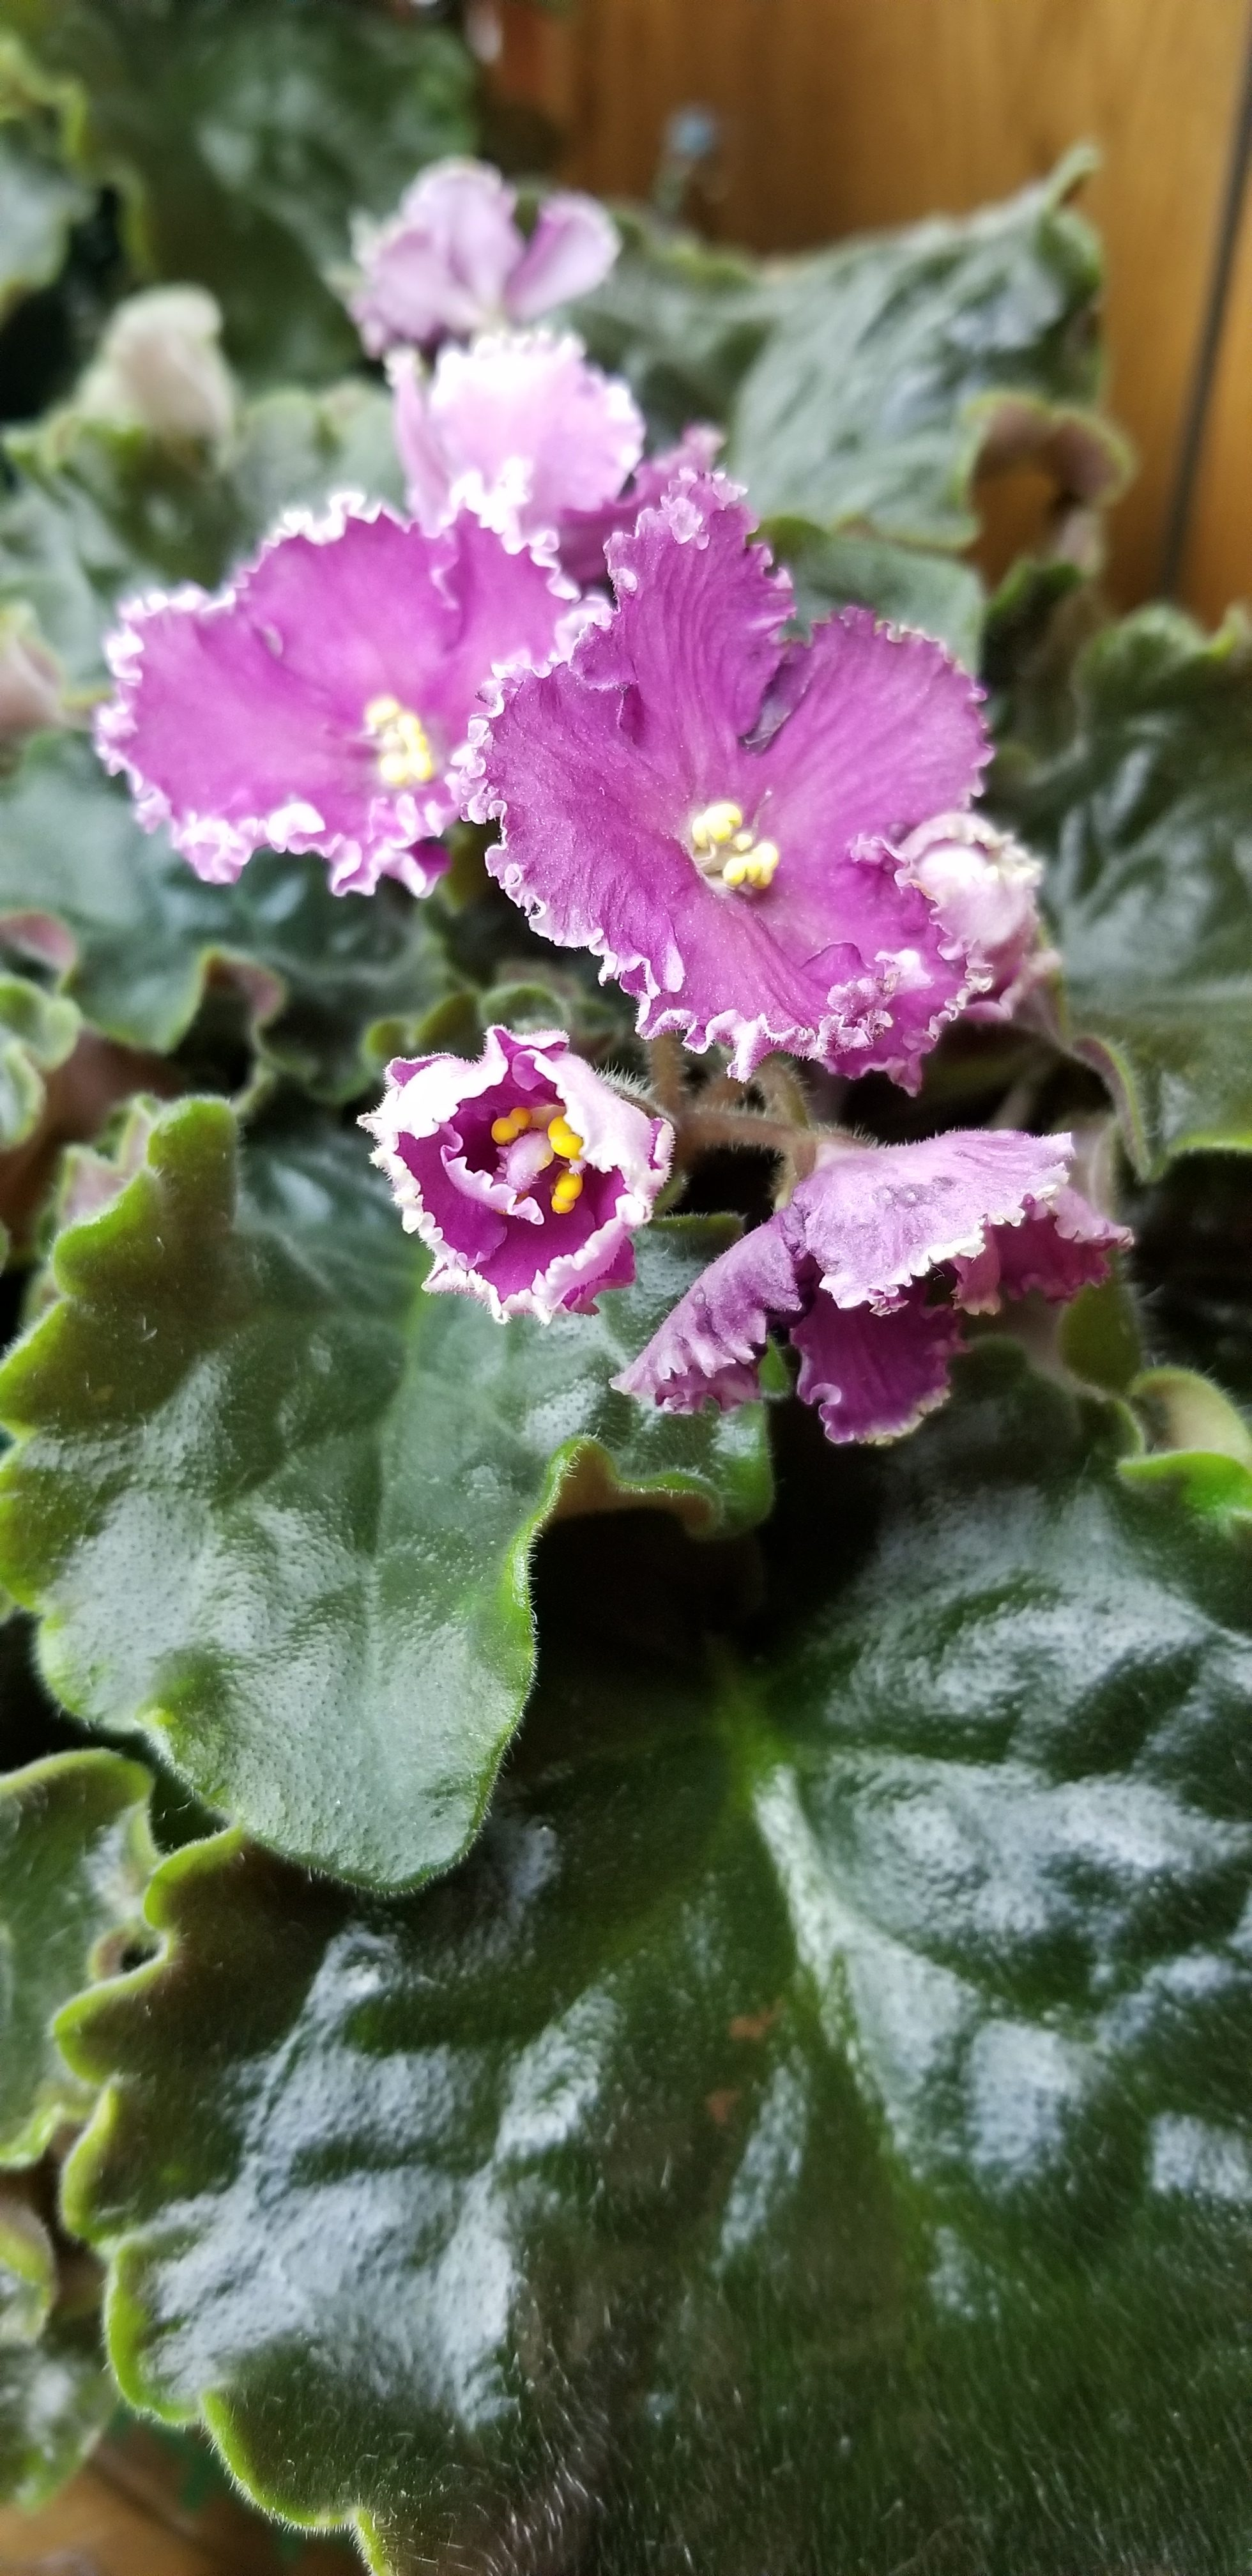 Magenta Dark Pink with krinkly white edge, Standard size, ruffled leaves lifting a bit higher